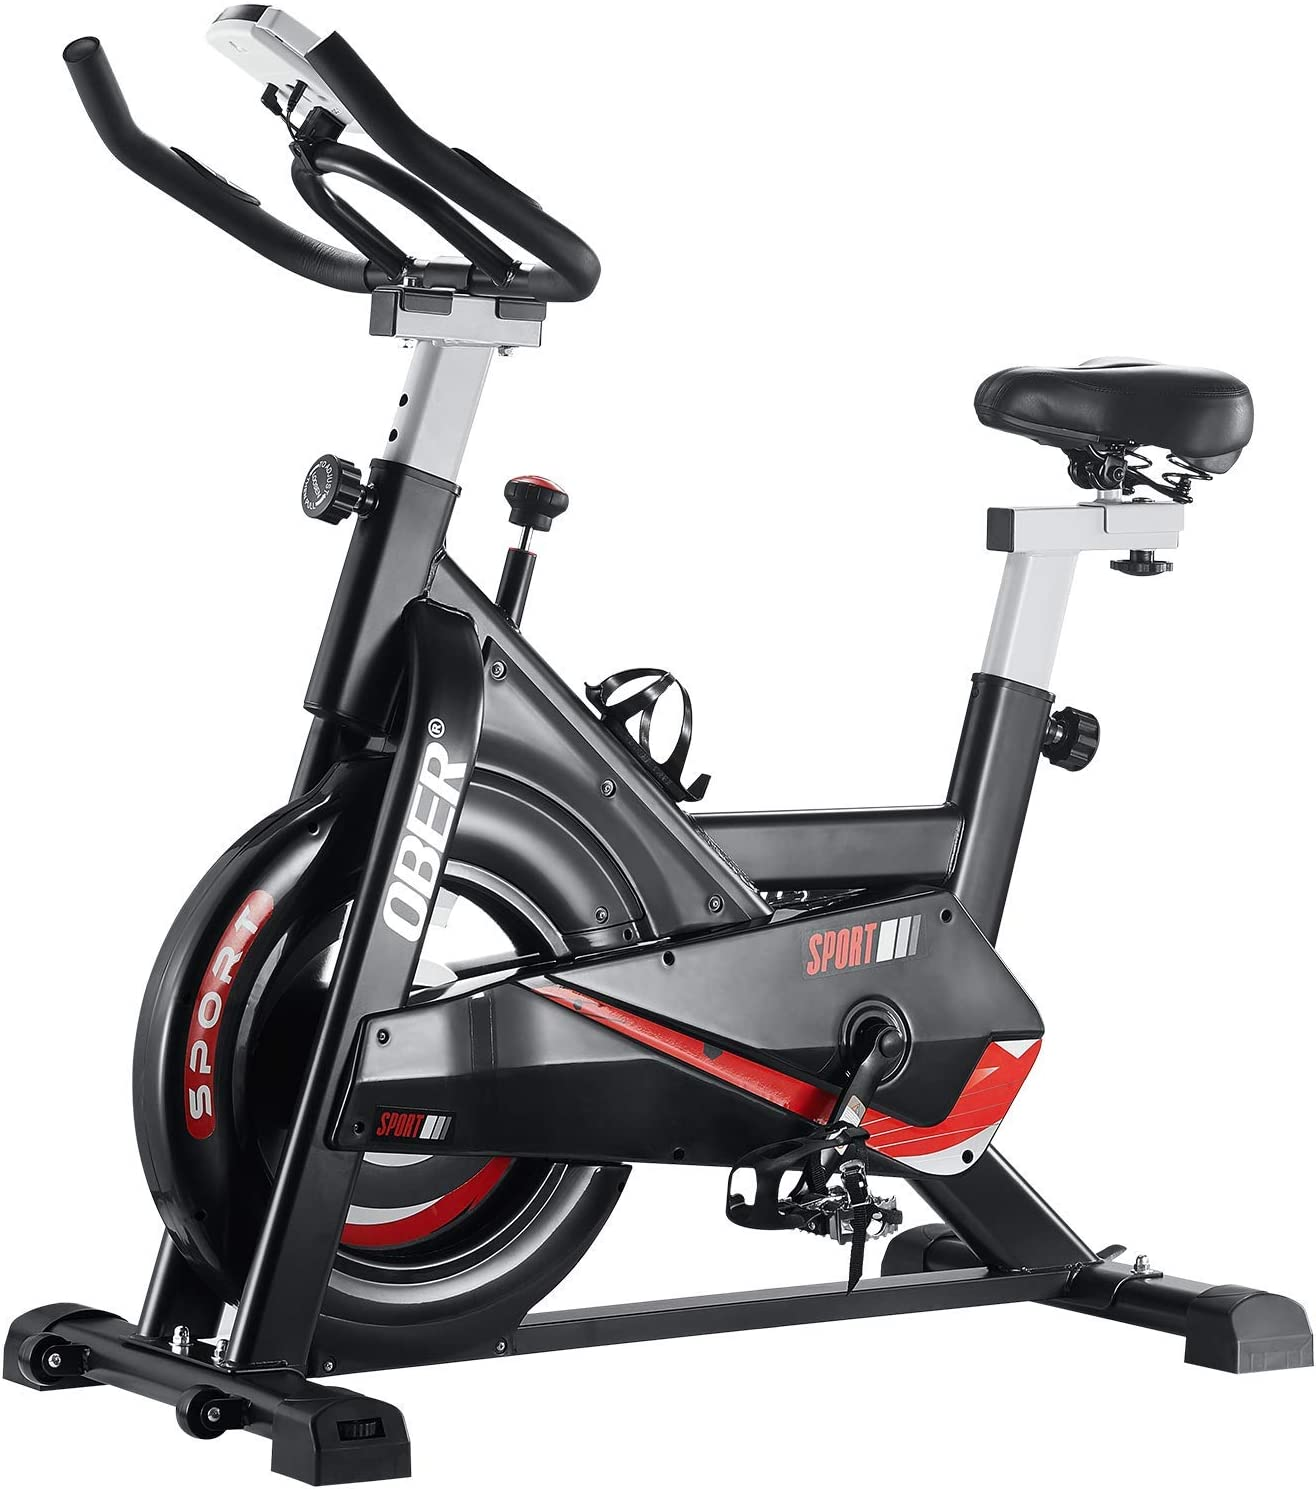 Ober Stationary Exercise Bike 300 Workout Sp lb Cardio Capacity Super 5 ☆ very popular sale period limited